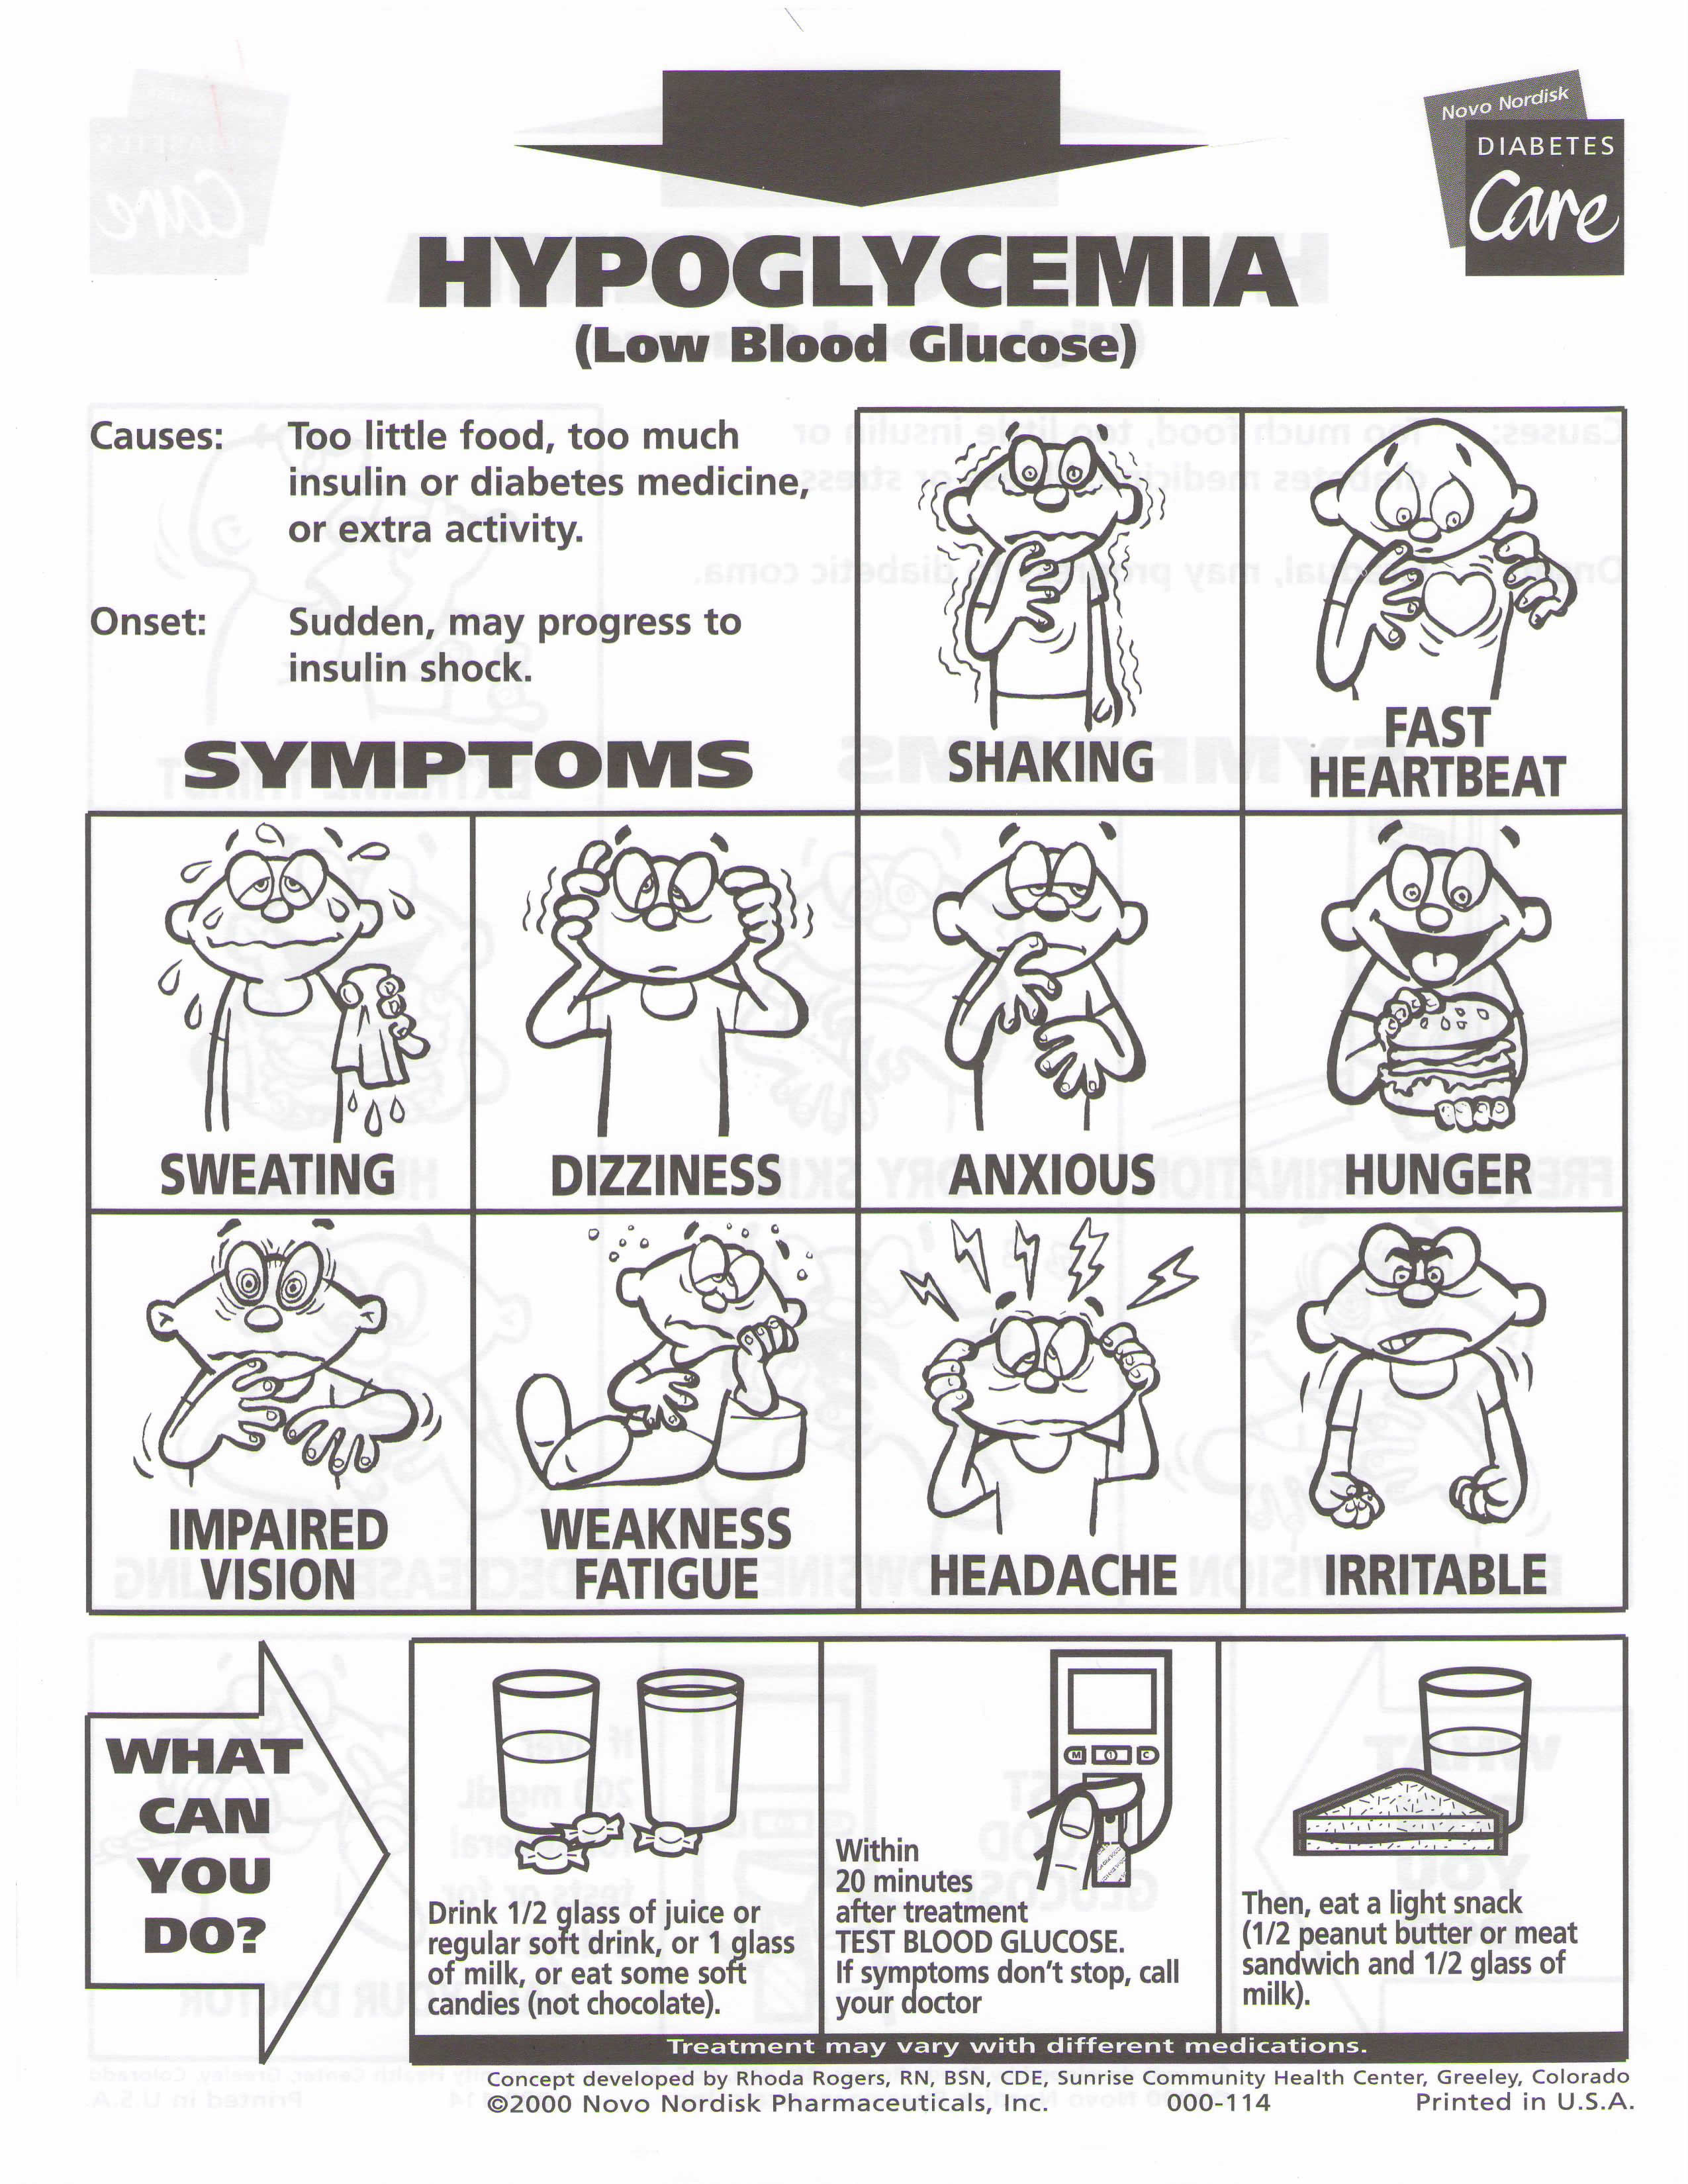 signs and symptoms of hyperglycemia | Diabetes Healthy Solution